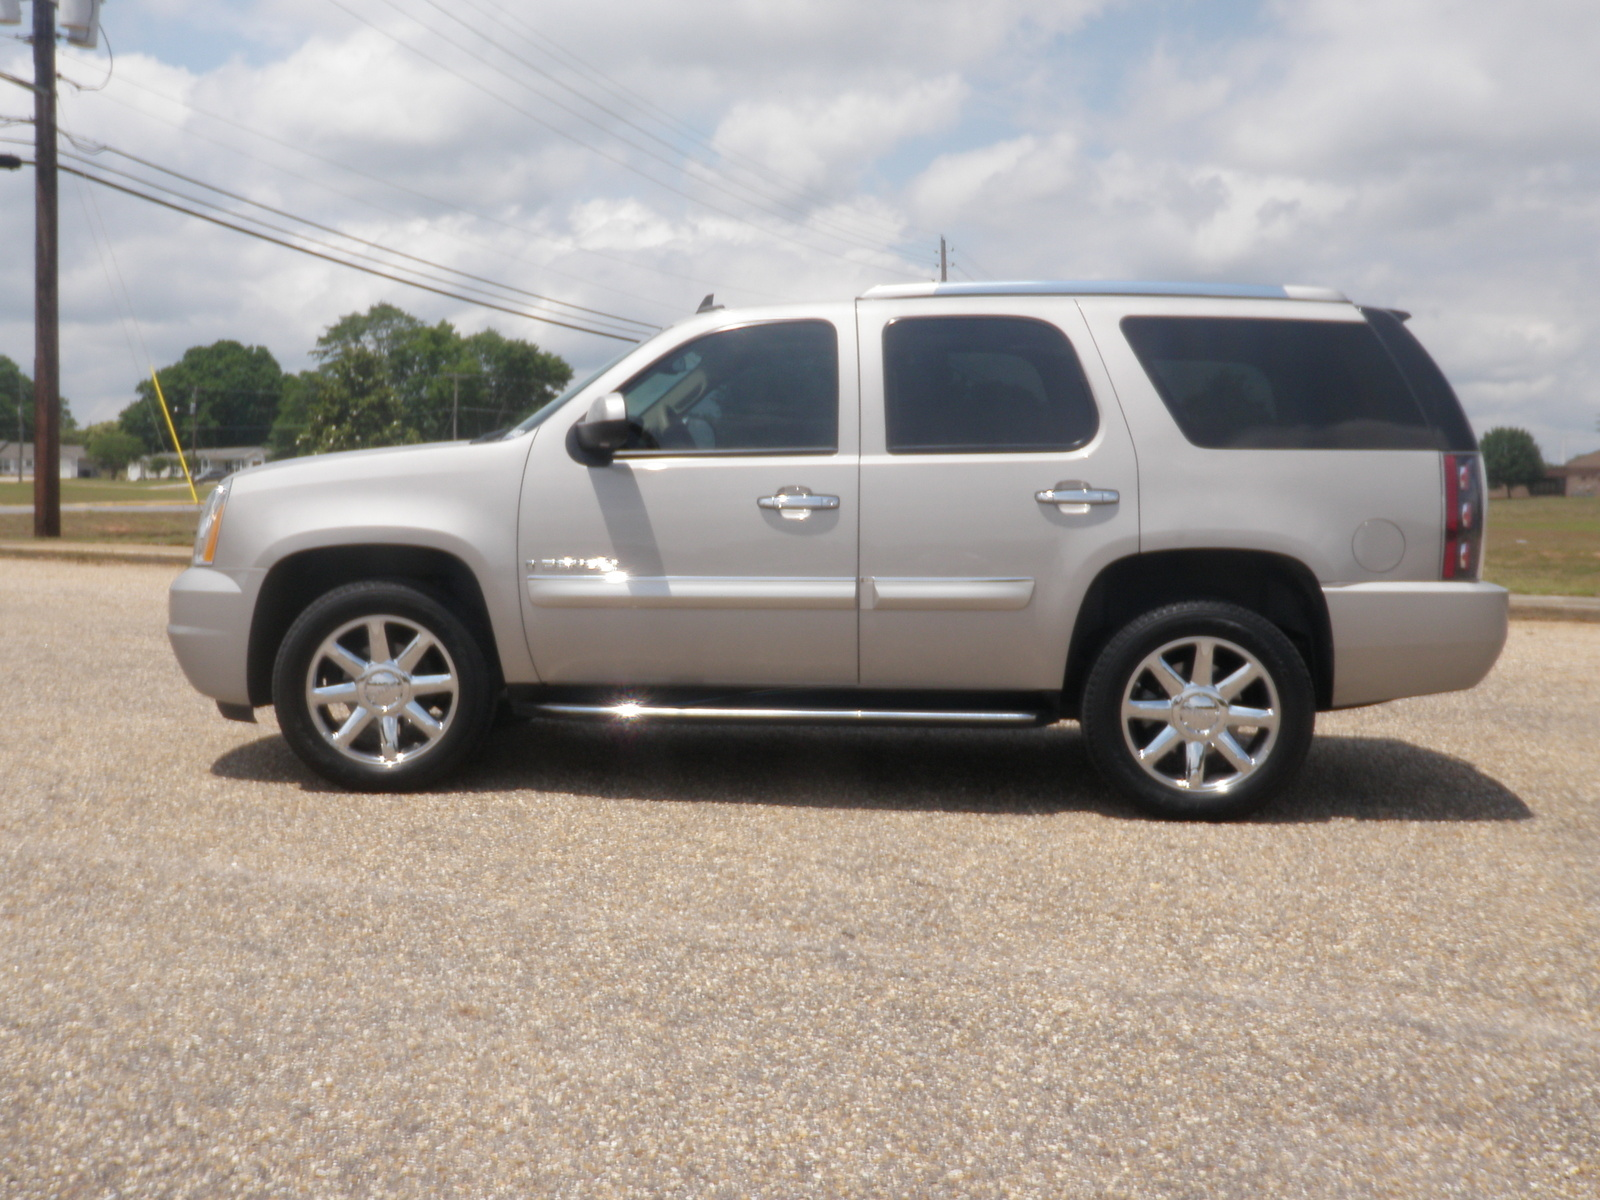 2007 gmc yukon denali xl awd for sale cargurus autos post. Black Bedroom Furniture Sets. Home Design Ideas